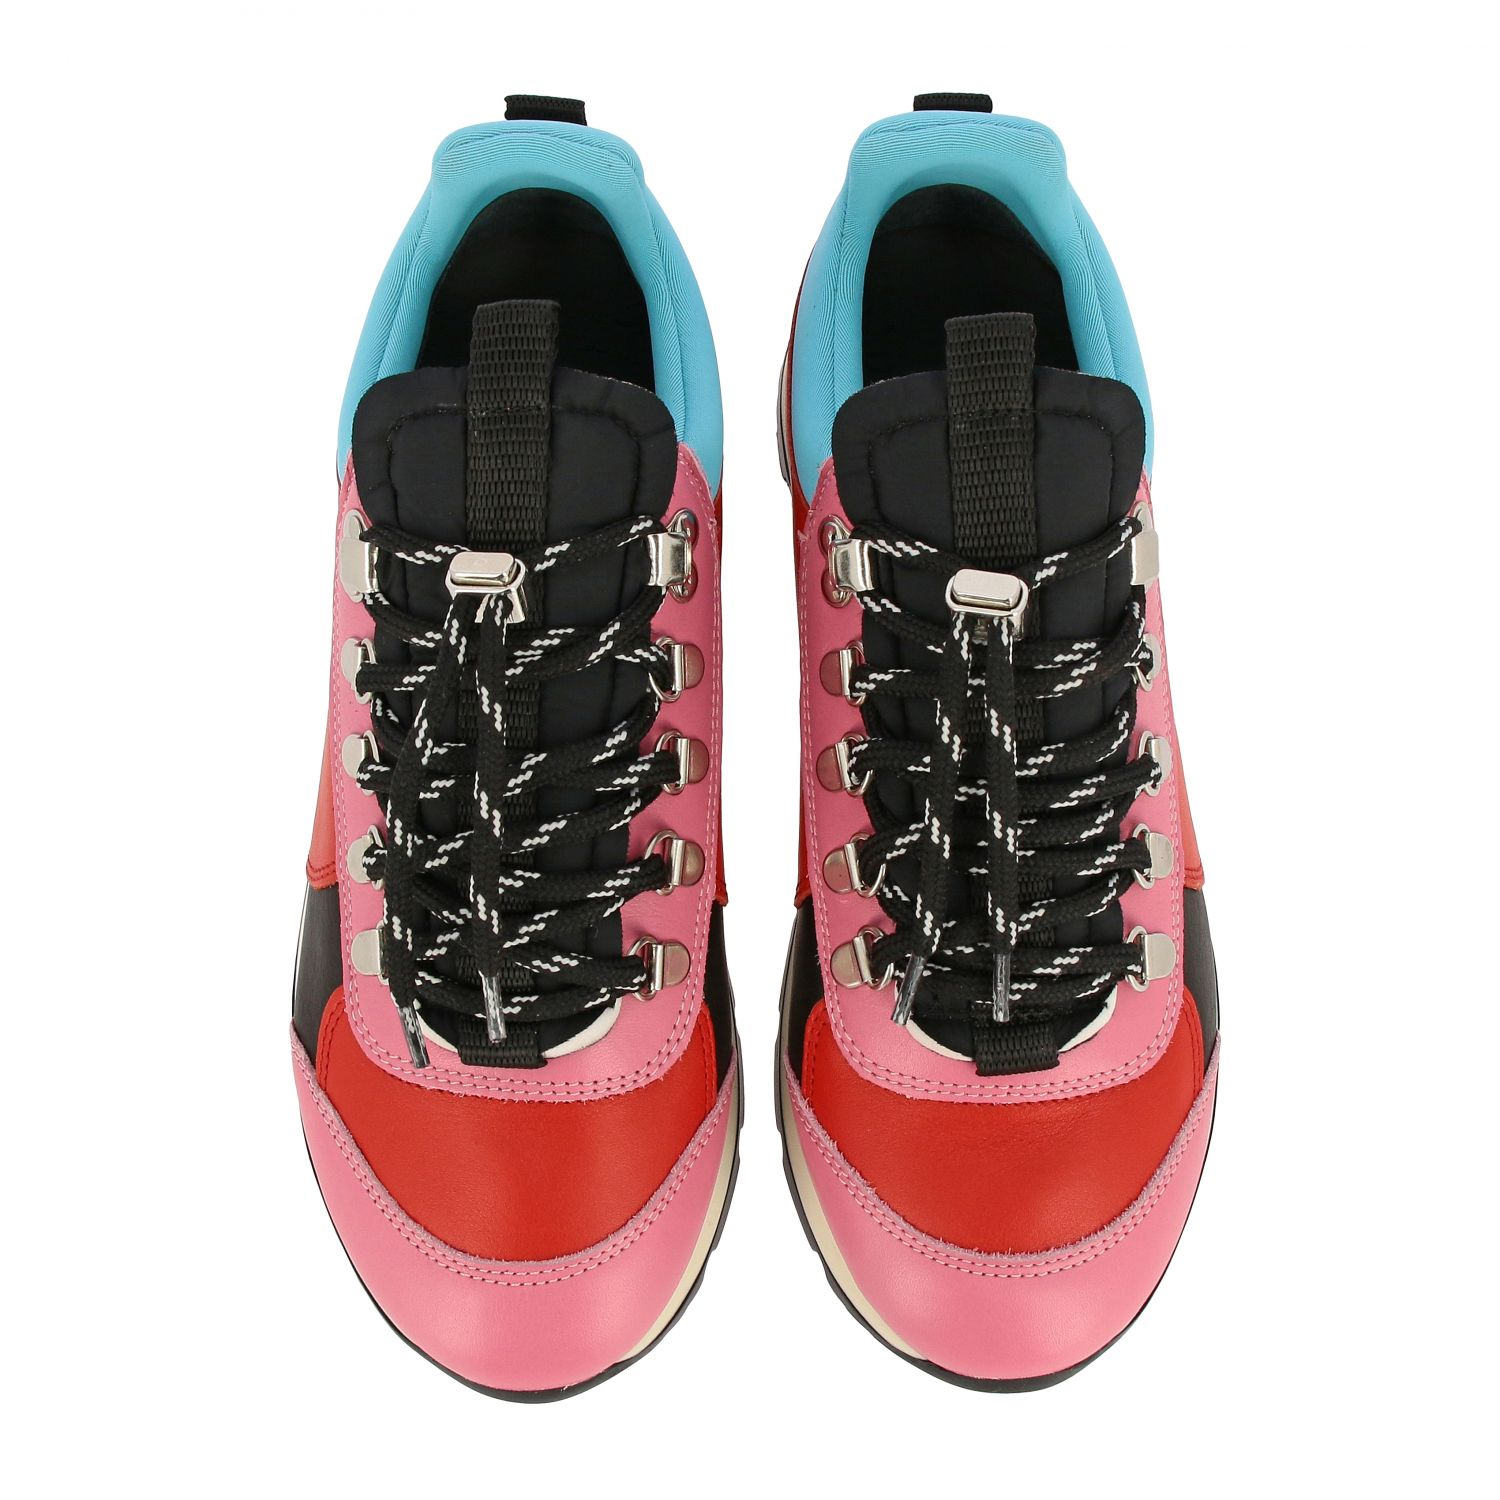 Shoes women Rossignol X Philippe Model red 3